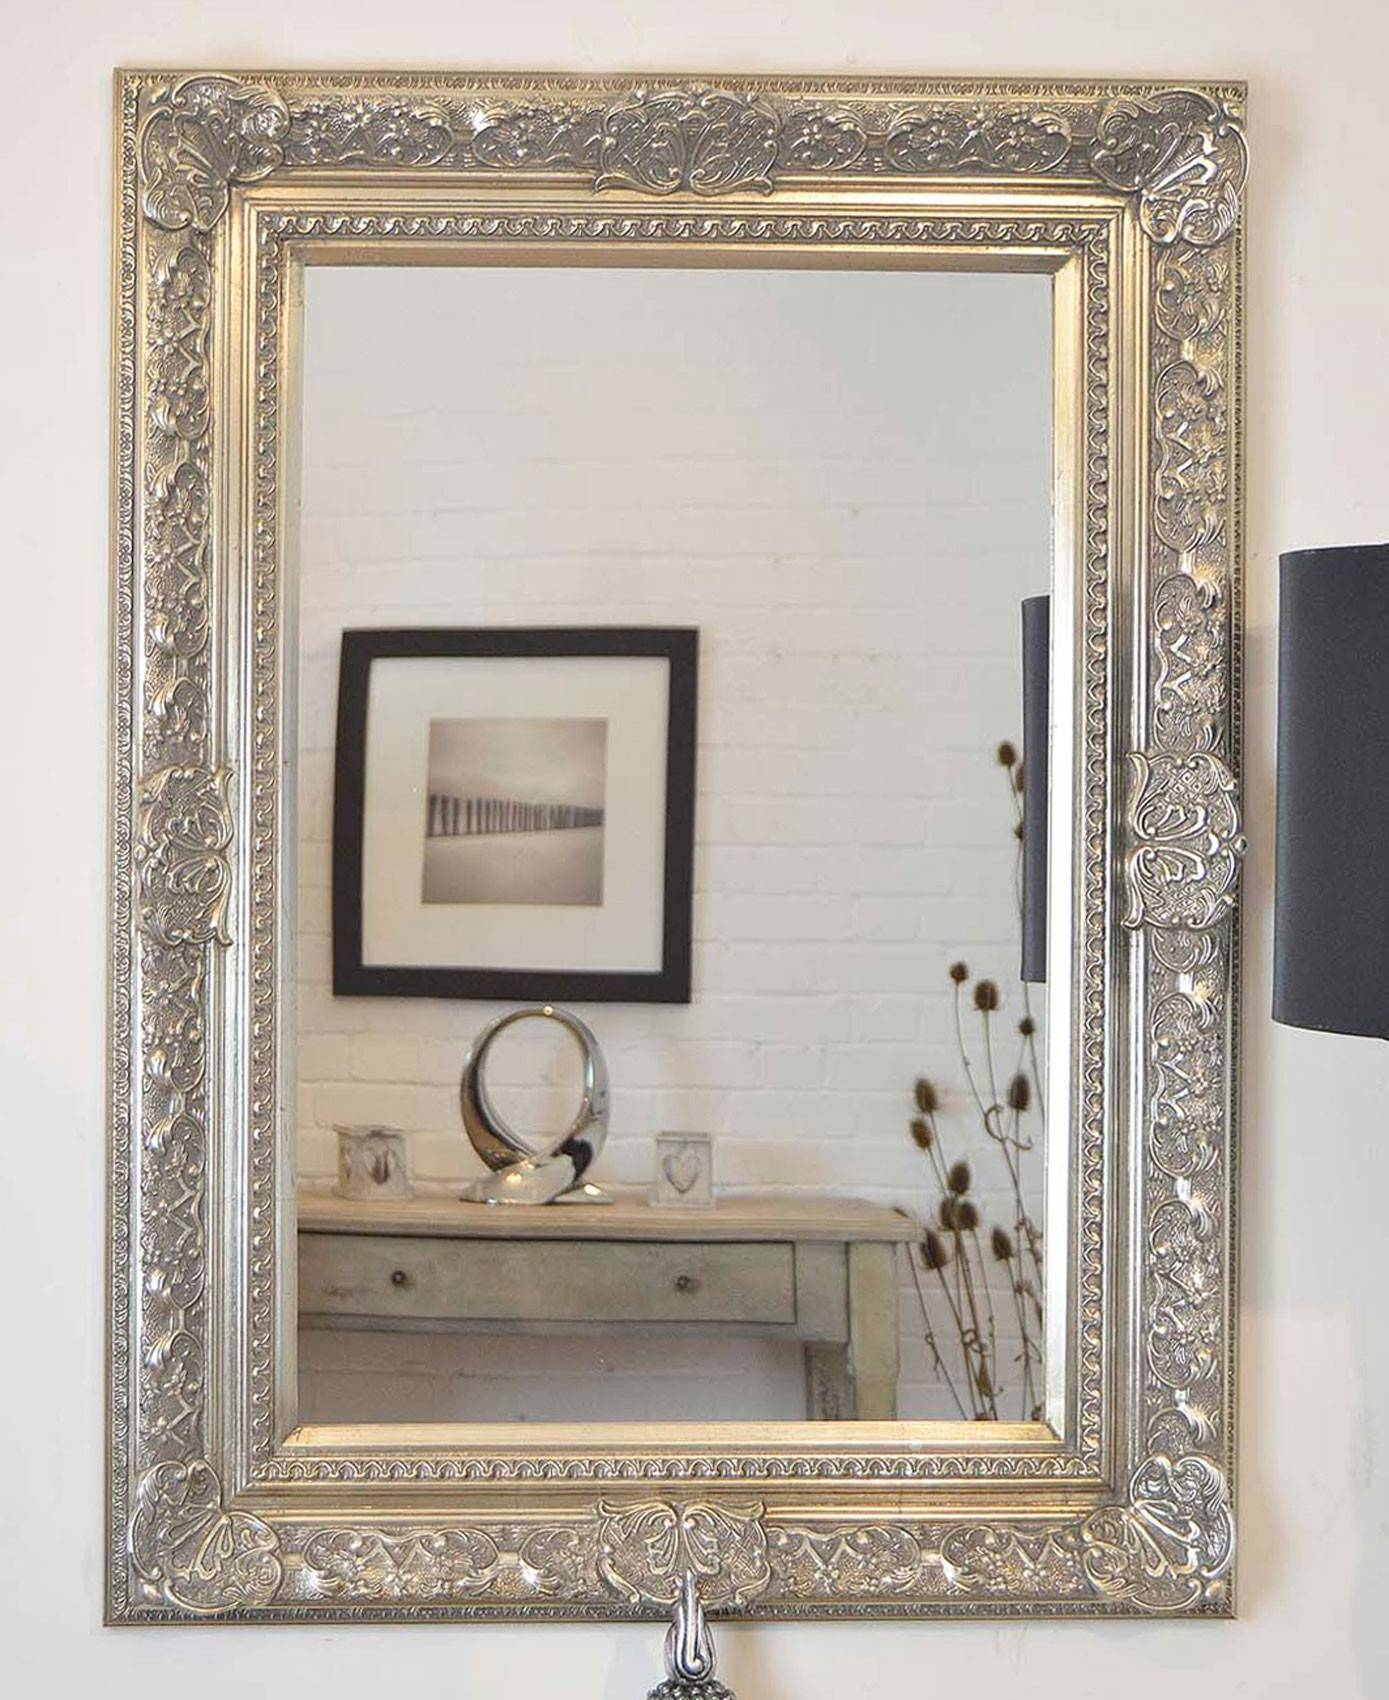 Cheap Large Wall Mirrors 79 Breathtaking Decor Plus Large Wall pertaining to Large Ornate Mirrors for Wall (Image 4 of 25)